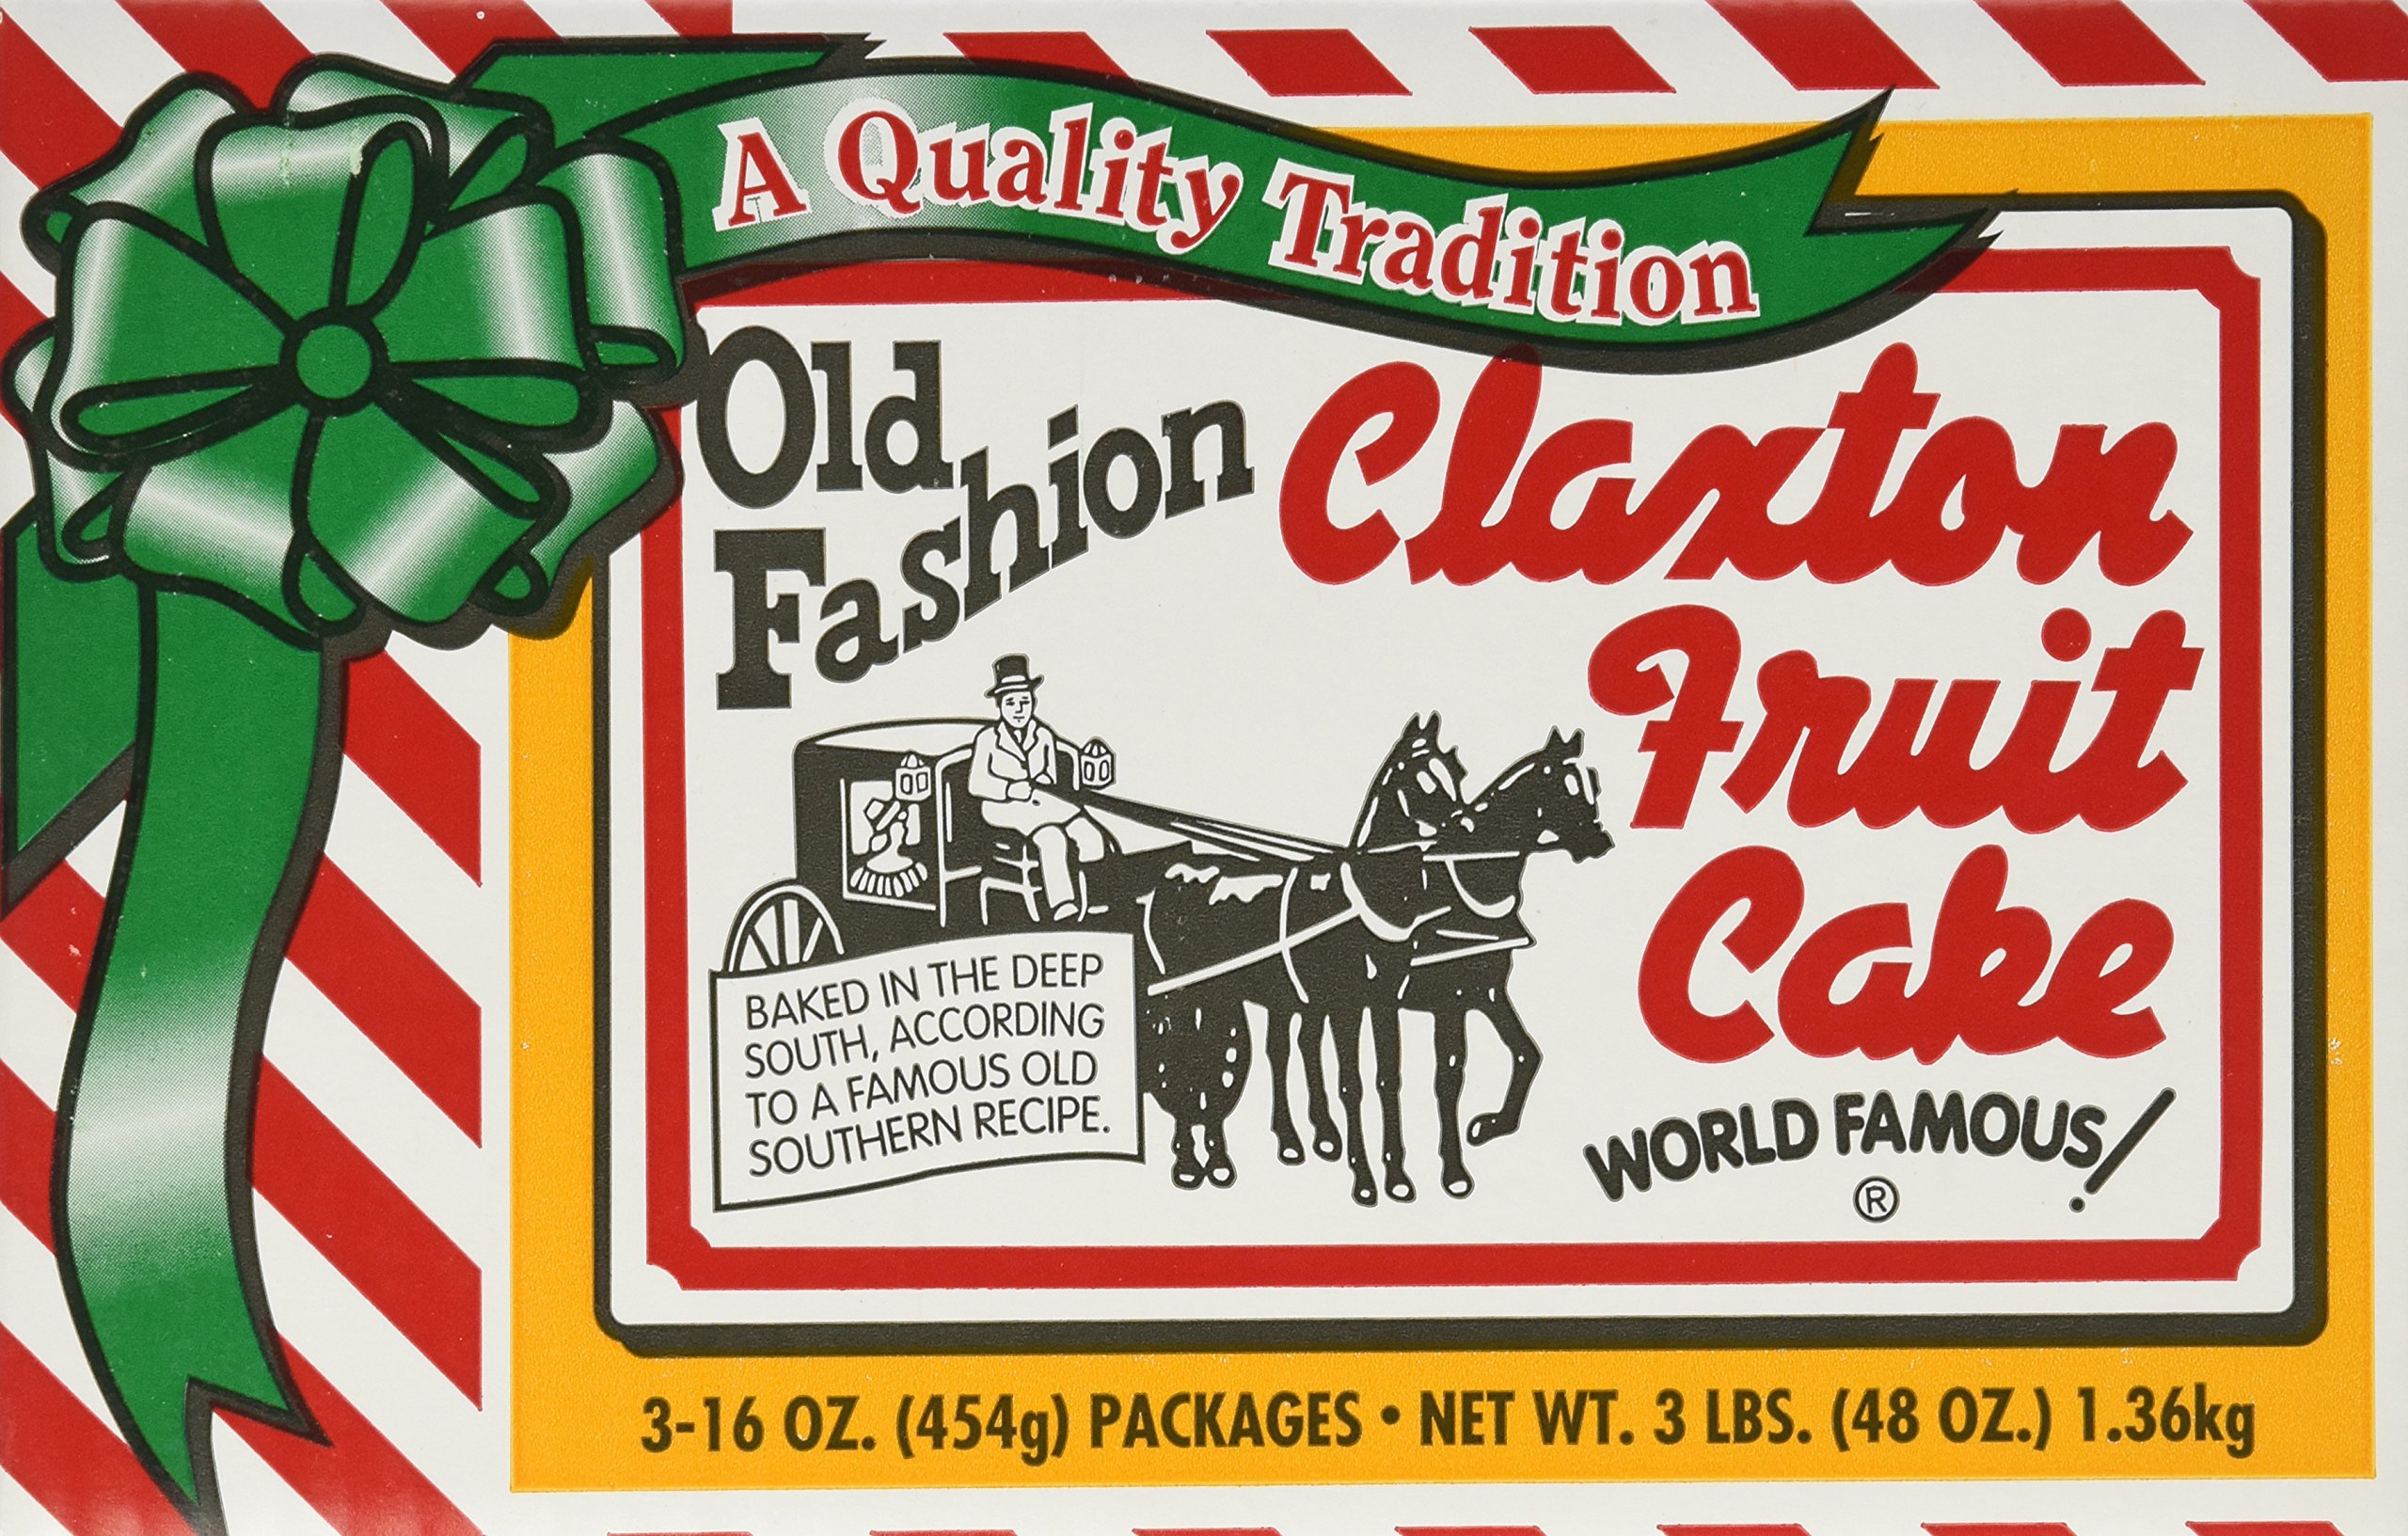 Claxton Old Fashioned Fruit Cake, 3 pounds